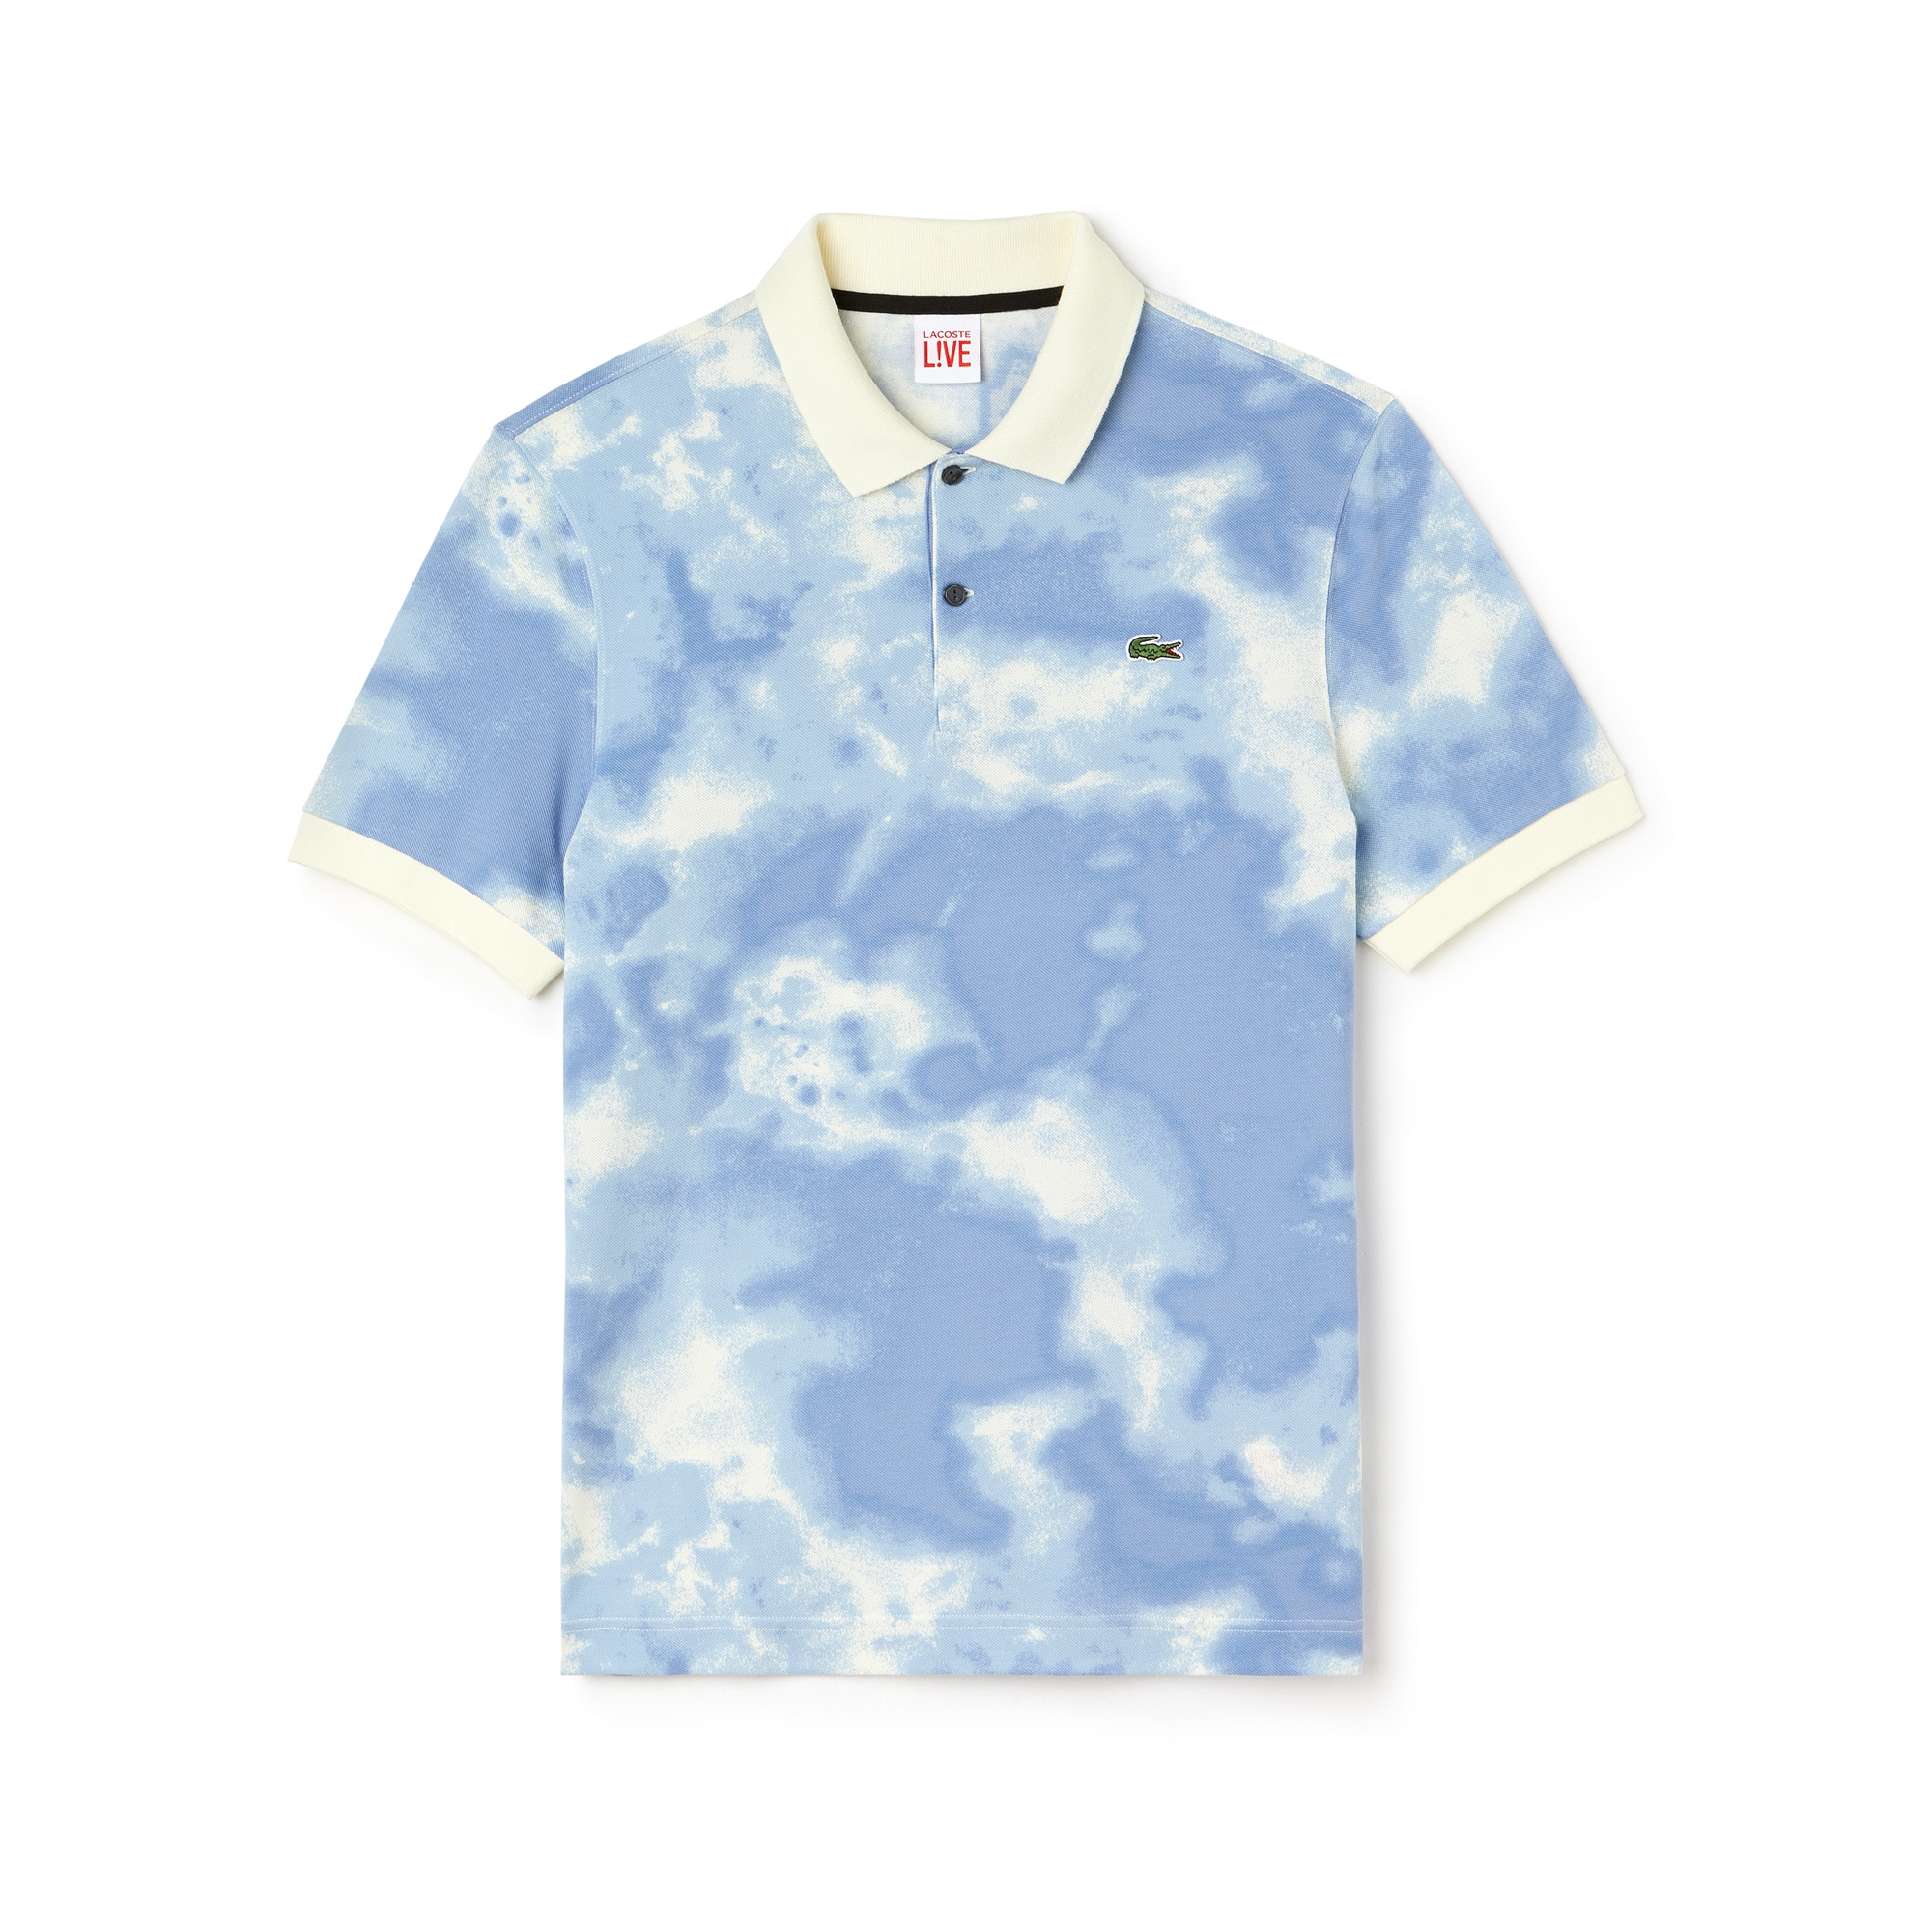 Polo regular fit Lacoste LIVE en mini piqué de coton imprimé nuages